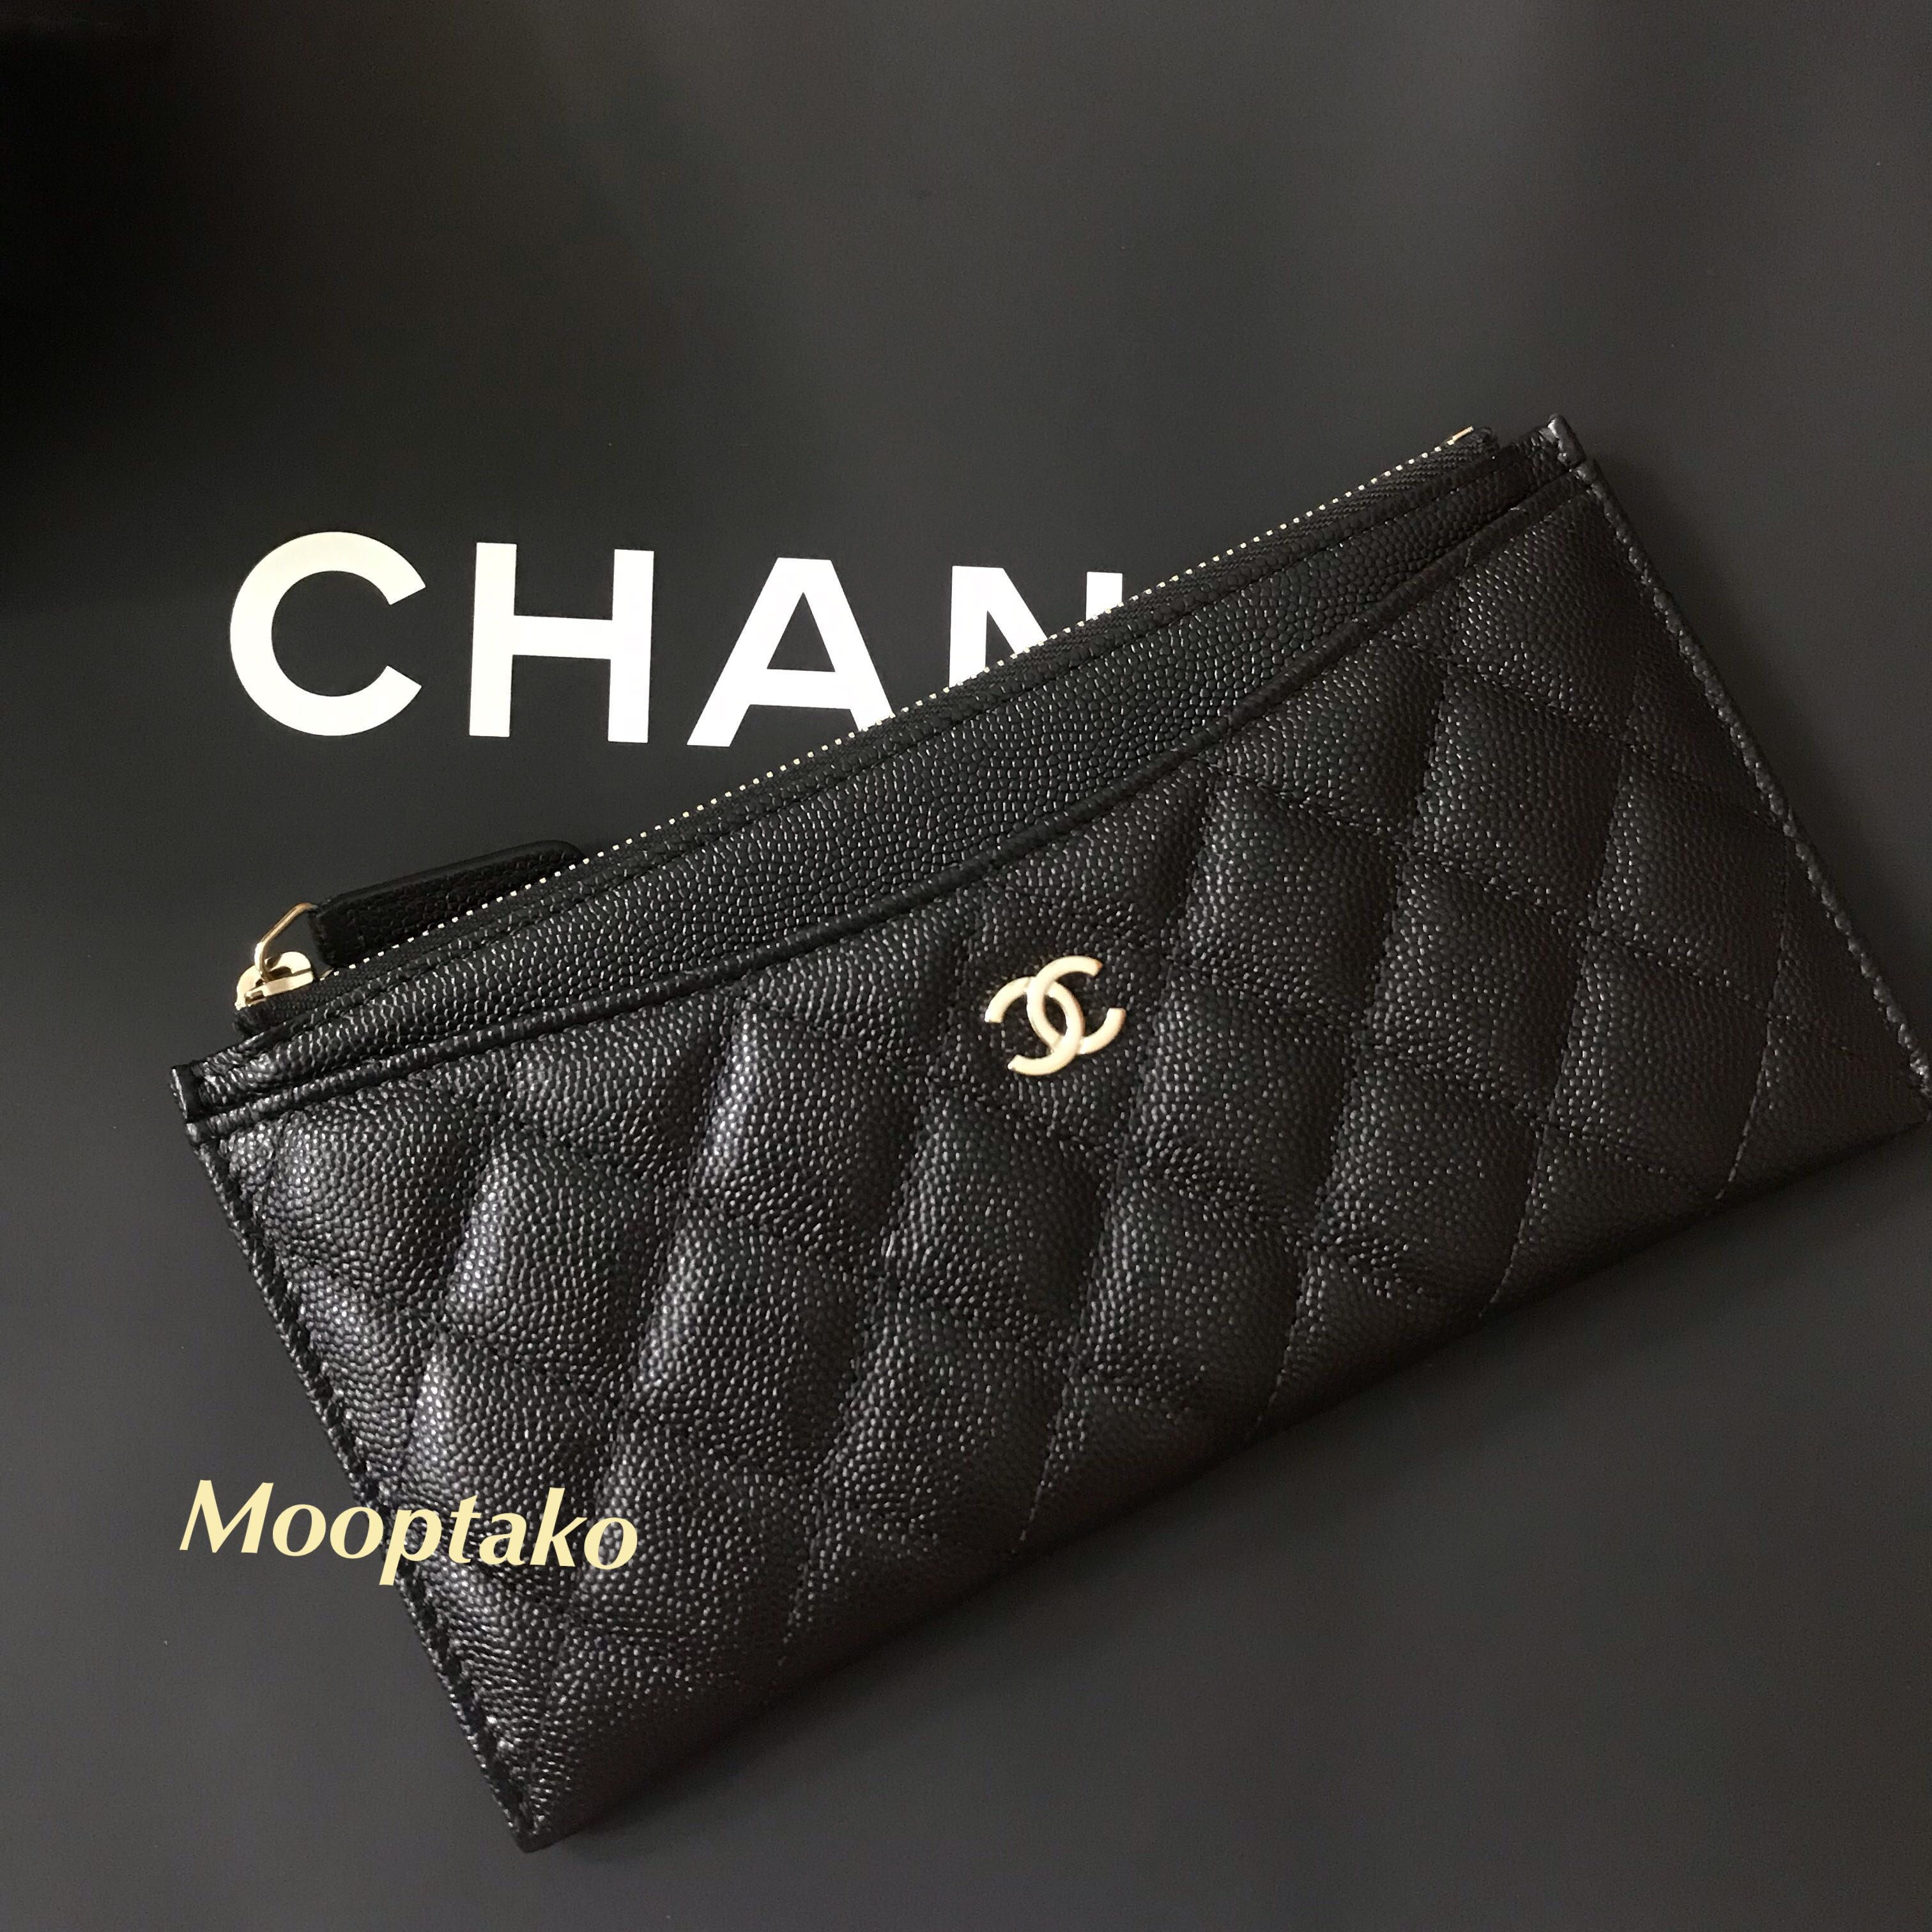 a21ffc2fec64 BNIB Authentic CHANEL phone case/wallet, Luxury, Bags & Wallets, Wallets on  Carousell